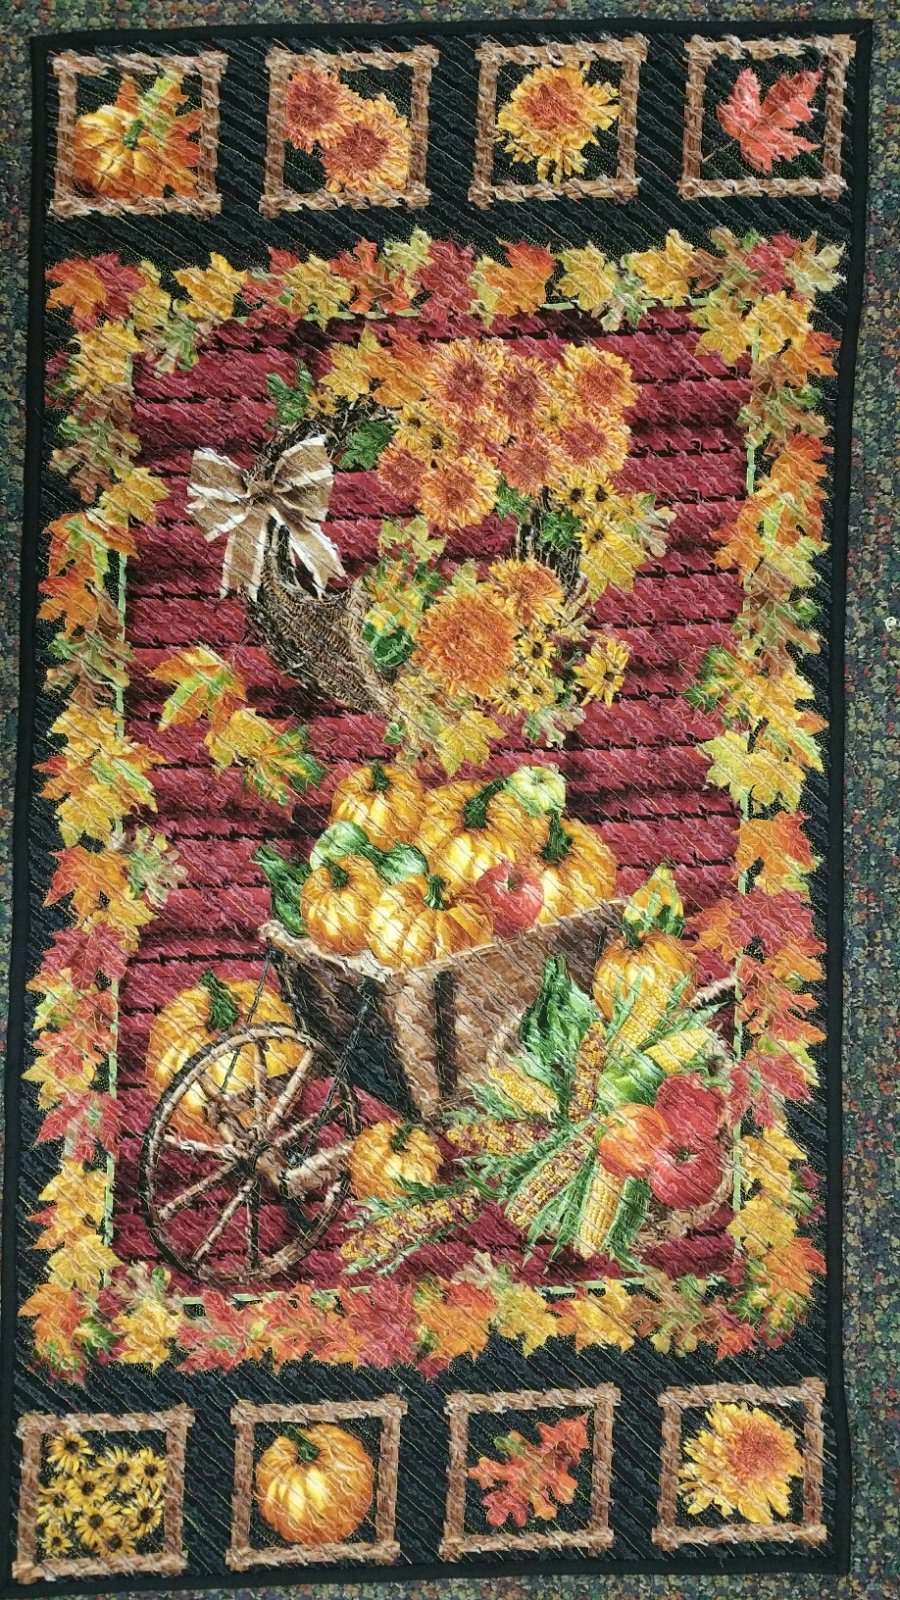 Chenille Fall Quilt Kit ON SALE! WAS $48 NOW $39.99